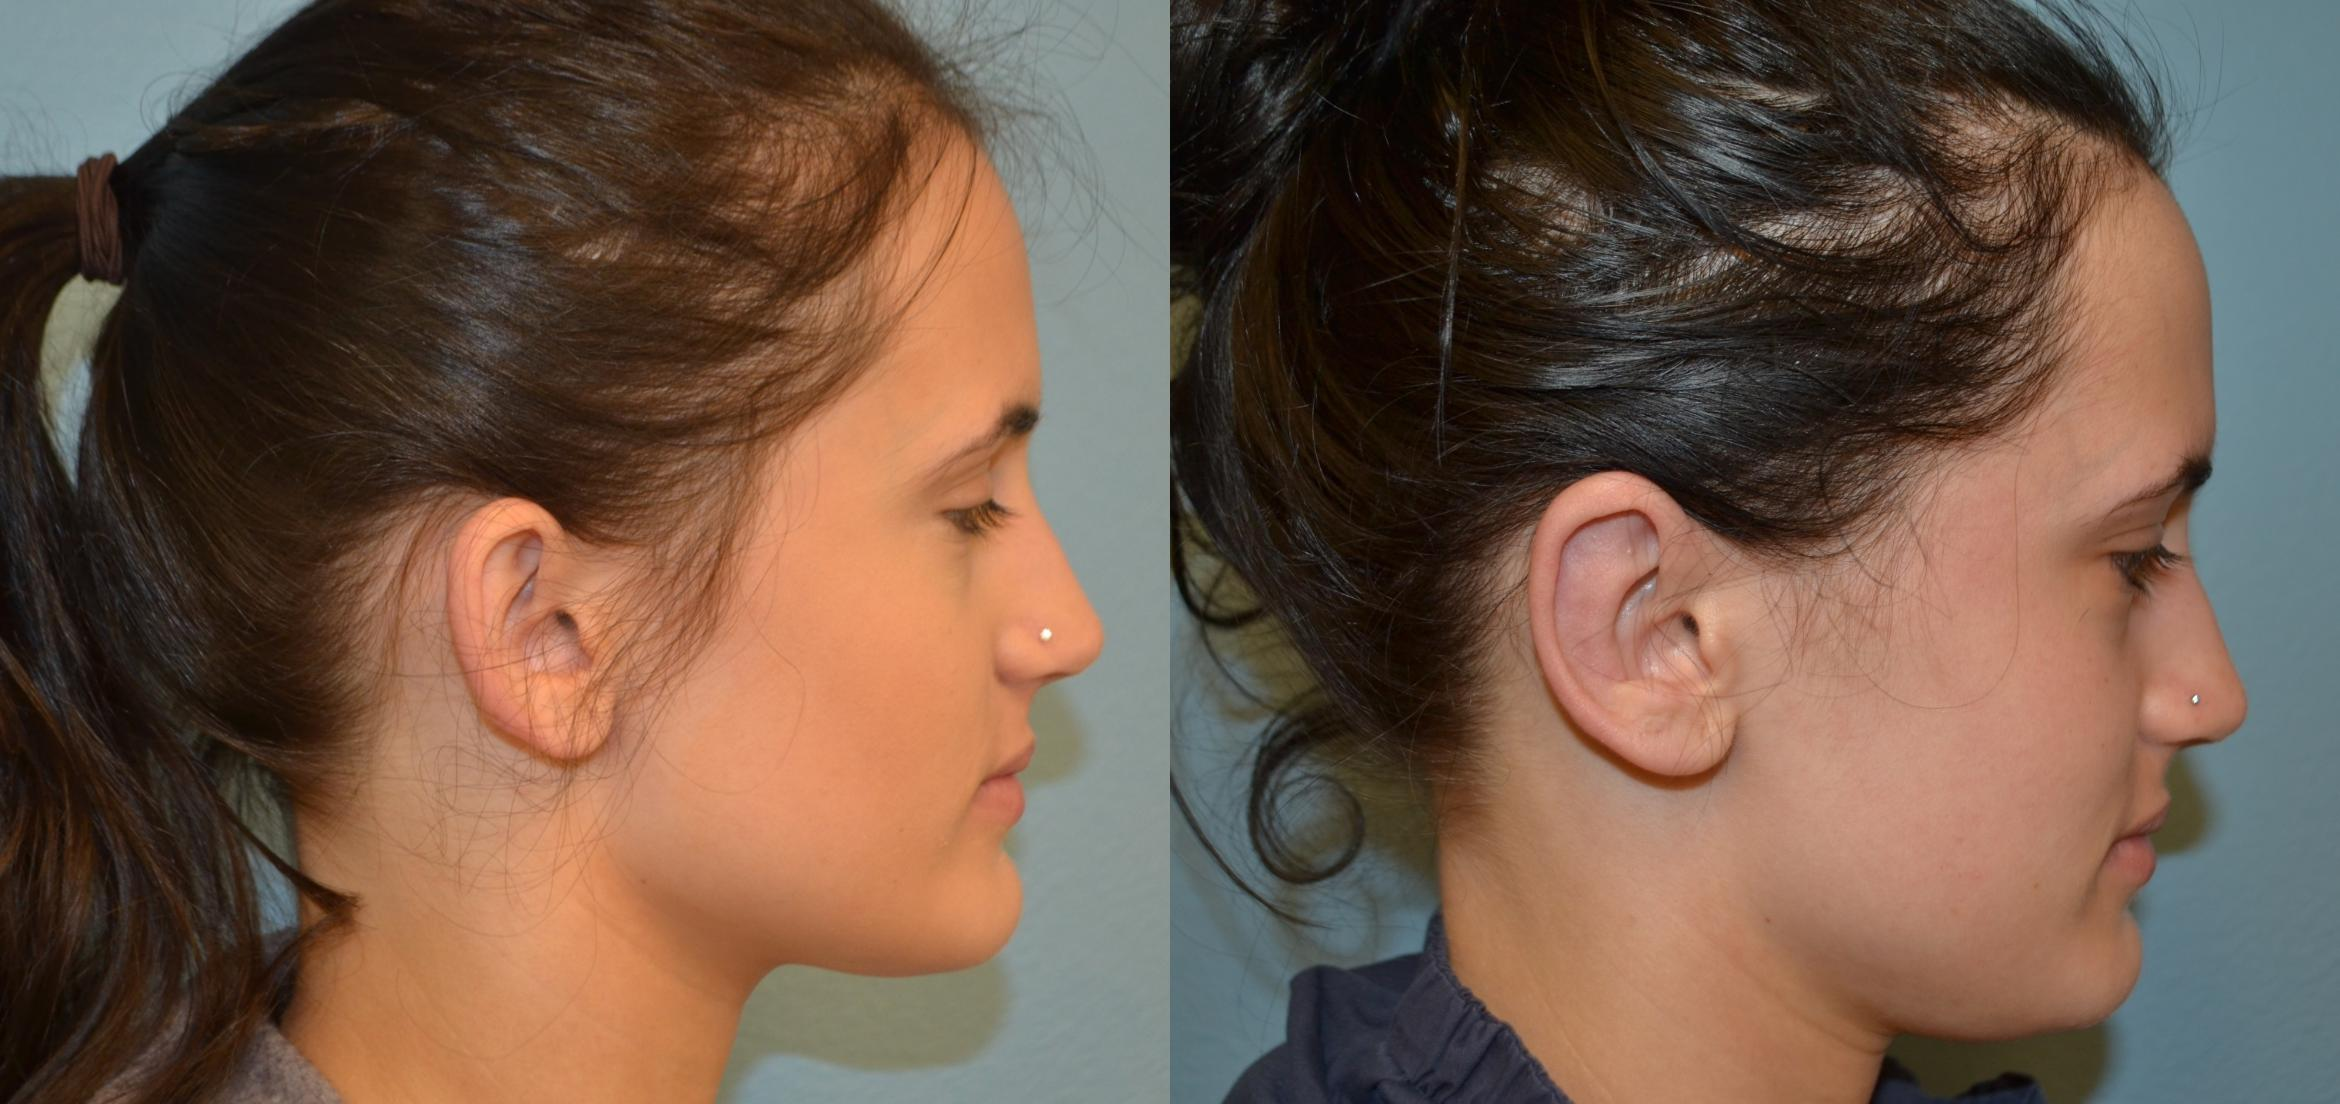 Ear Surgery Before & After Photo | San Francisco, CA | Kaiser Permanente Cosmetic Services